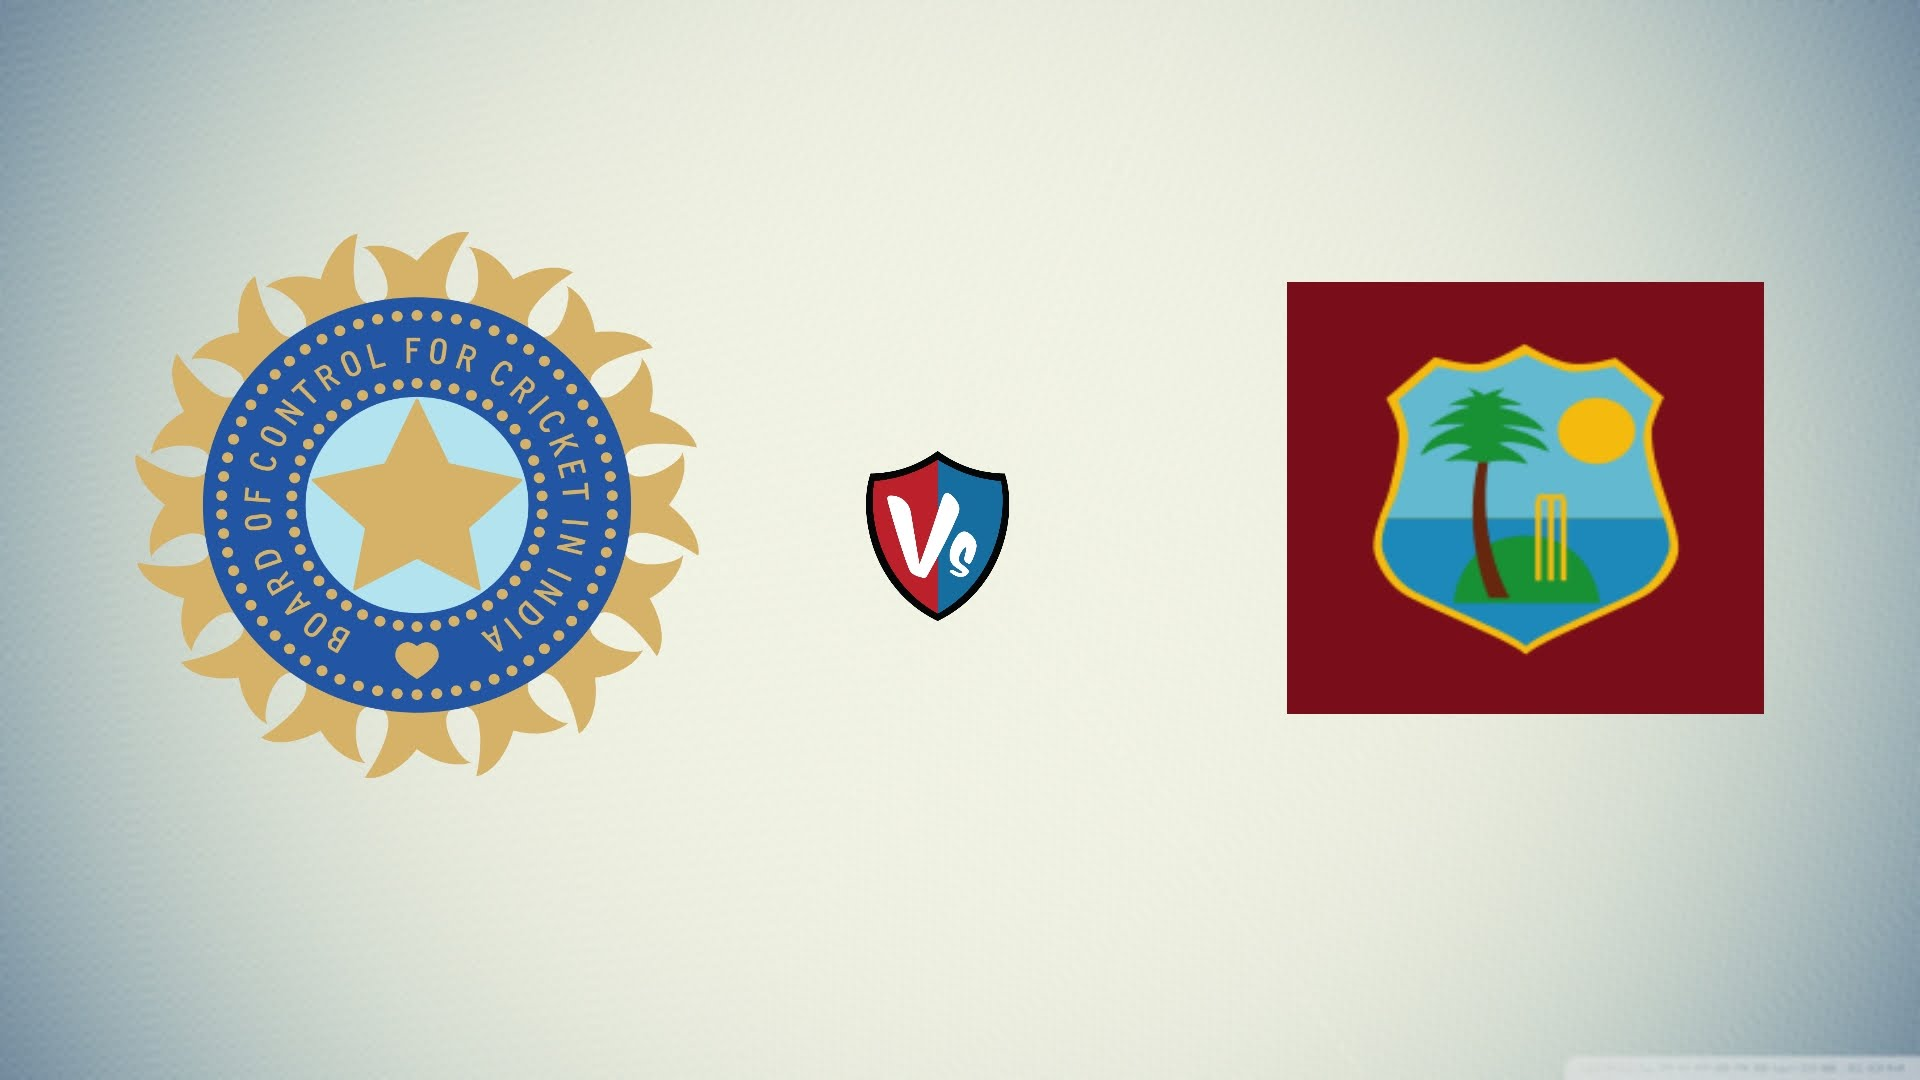 5th ODI match between India & West Indies to be played in Thiruvananthapuram today